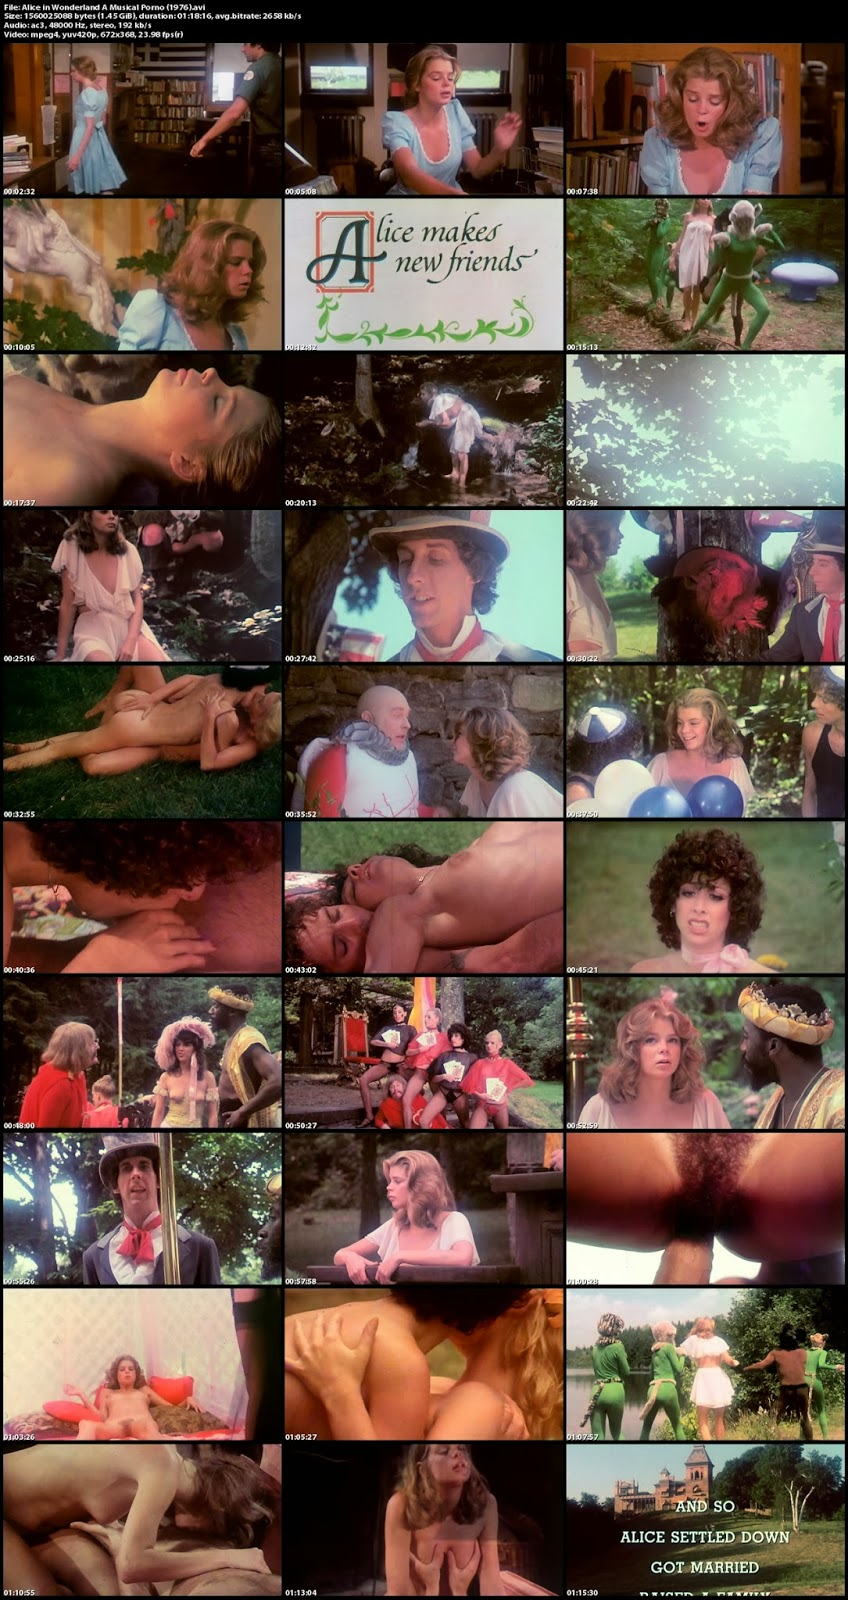 Alice In Wonderland A Musical Porno 1976 alice in wonderland (1976) - bud townsend - free porn